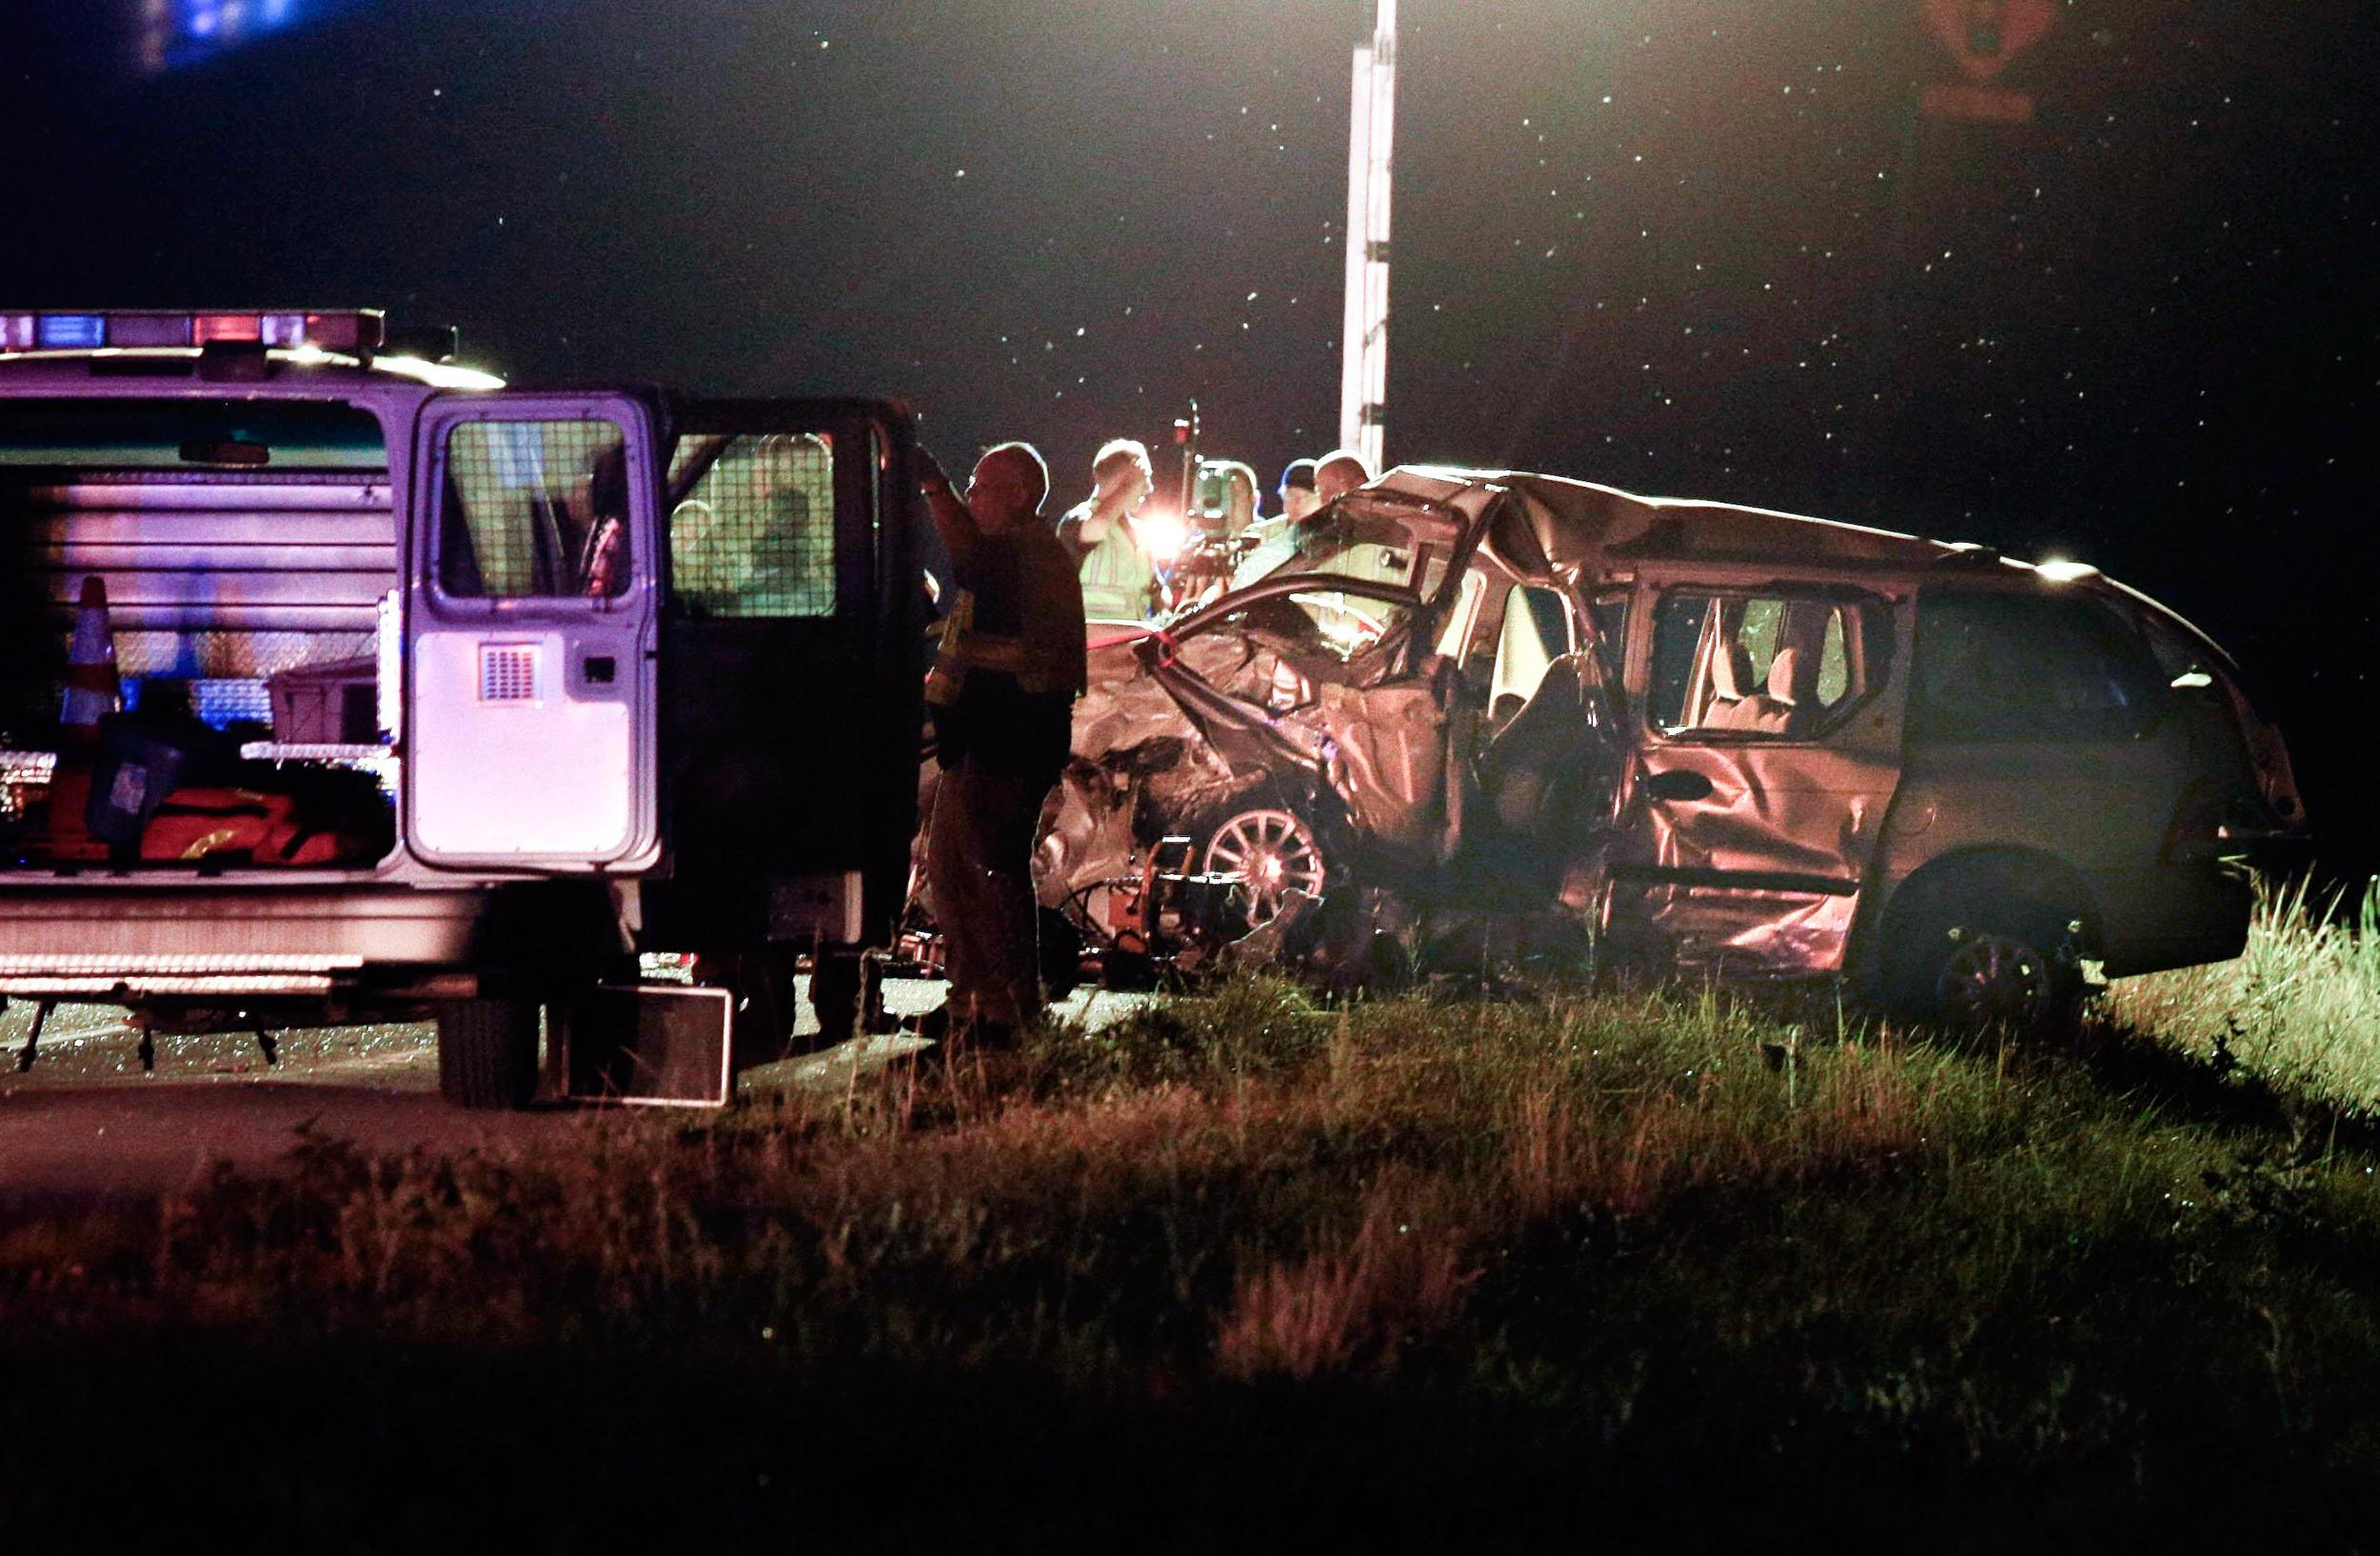 Image:  Rescue personnel and police investigate a deadly two-vehicle crash on U.S. 27 in Nicholasville, Ky.